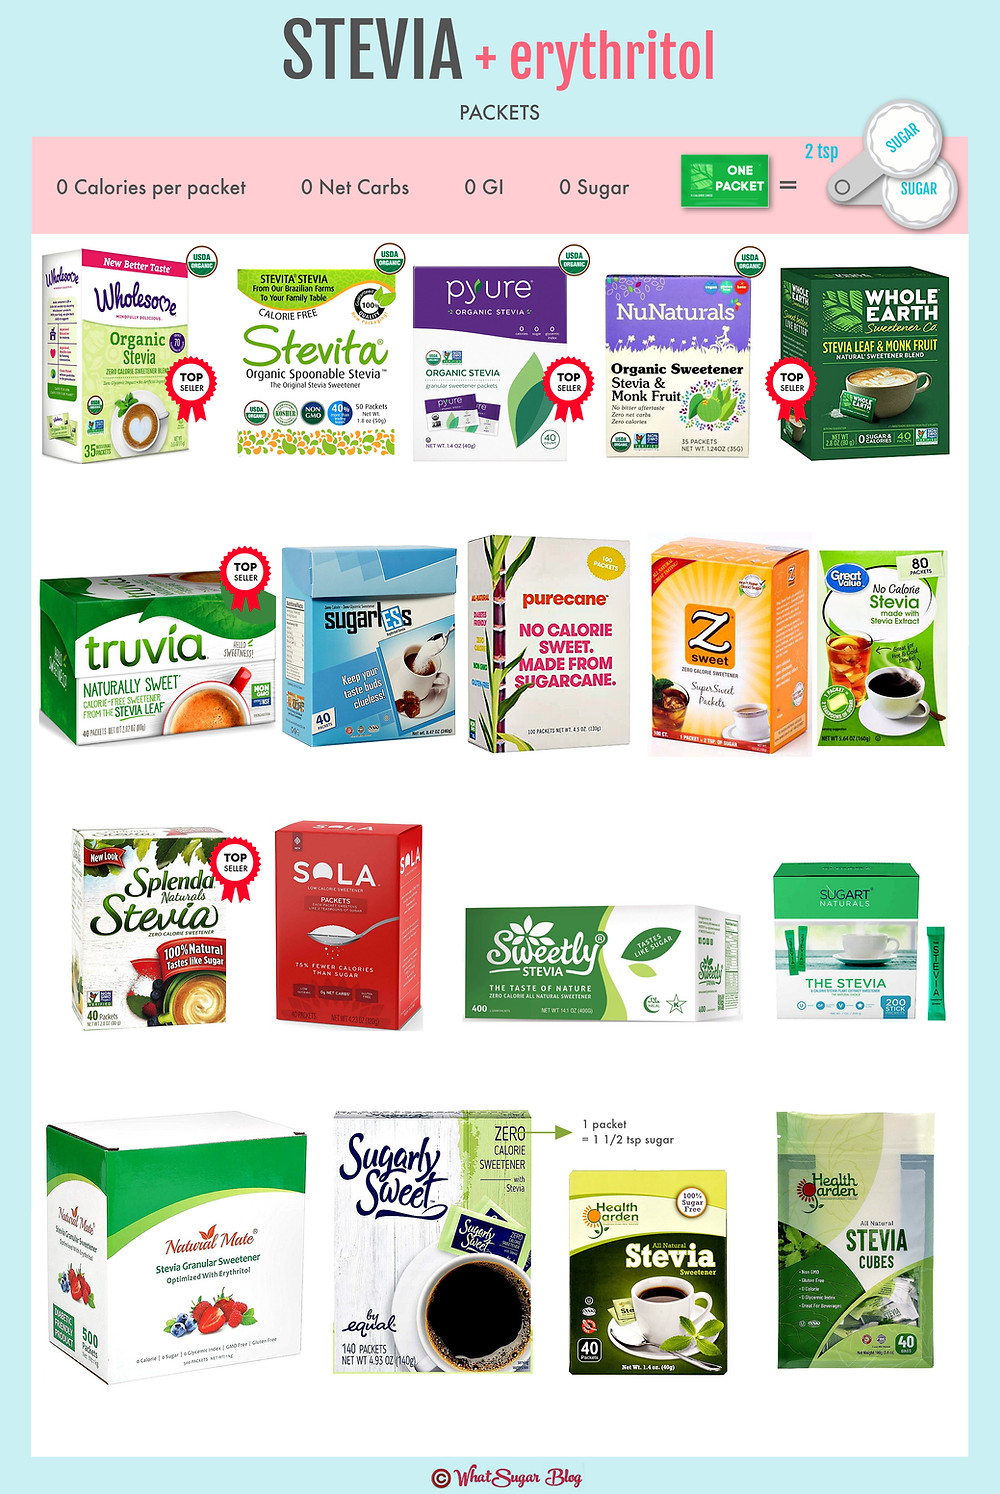 Brands of Stevia with Erythritol Packets